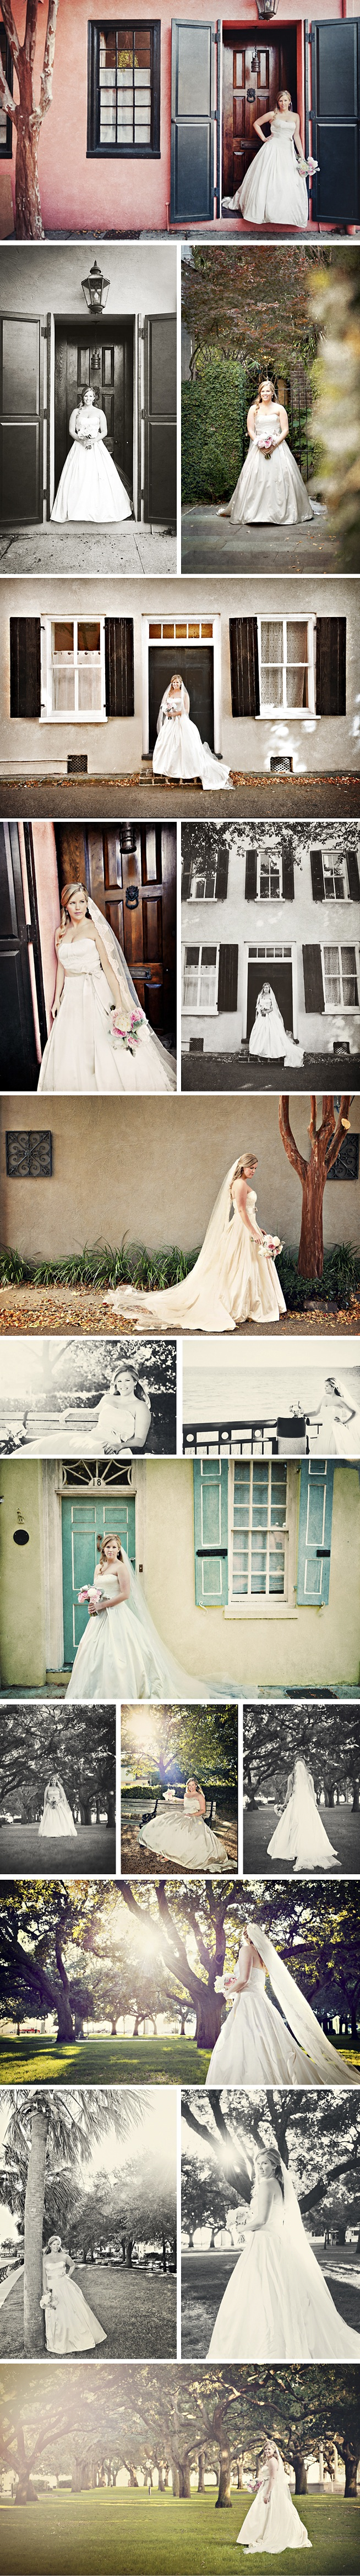 Wedding Blogs | wedding Ideas